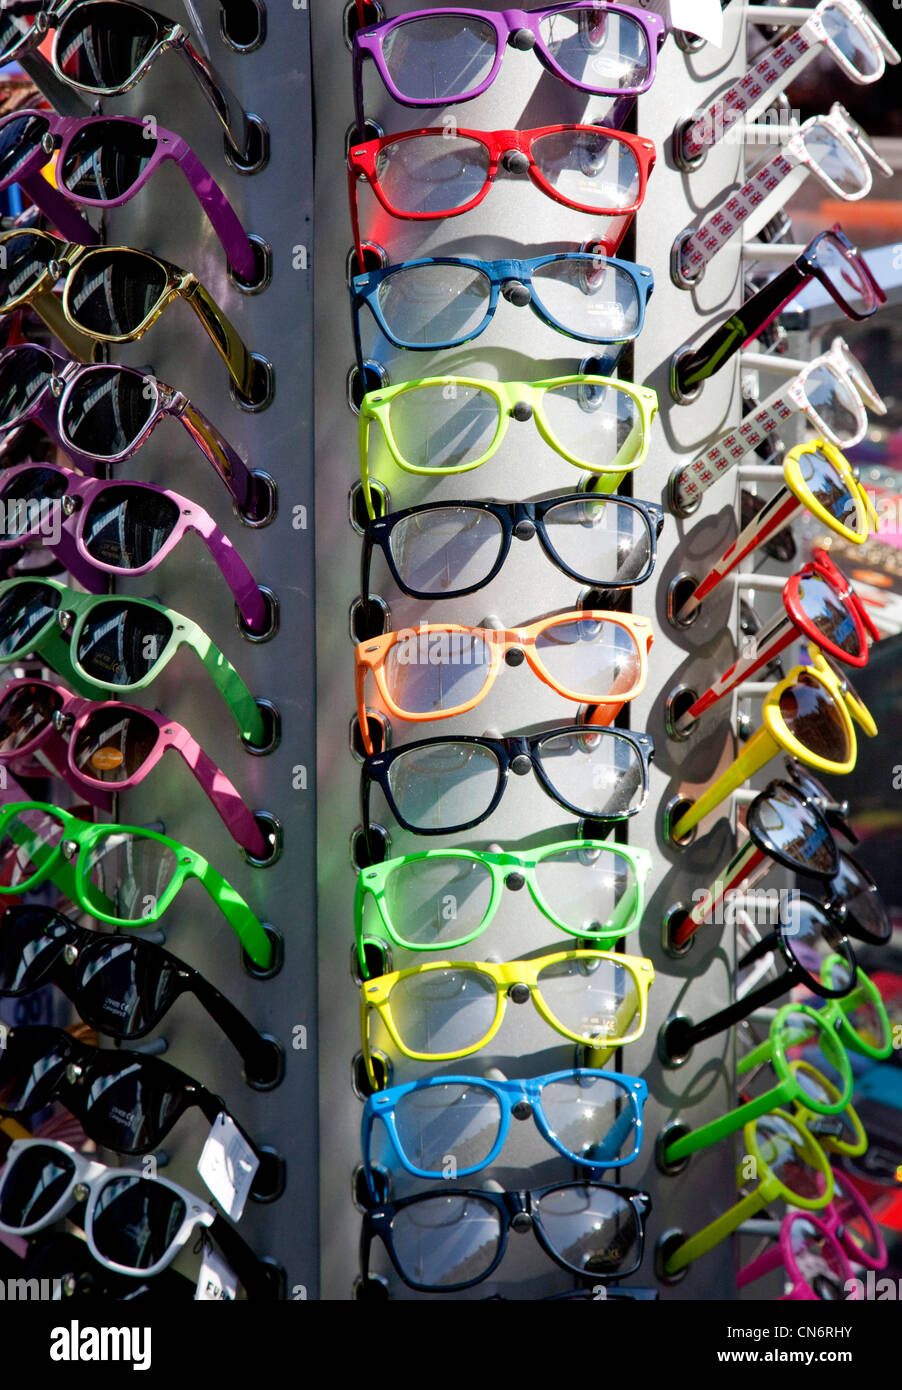 Inexpensive fashion sunglasses on sale in London shop - Stock Image